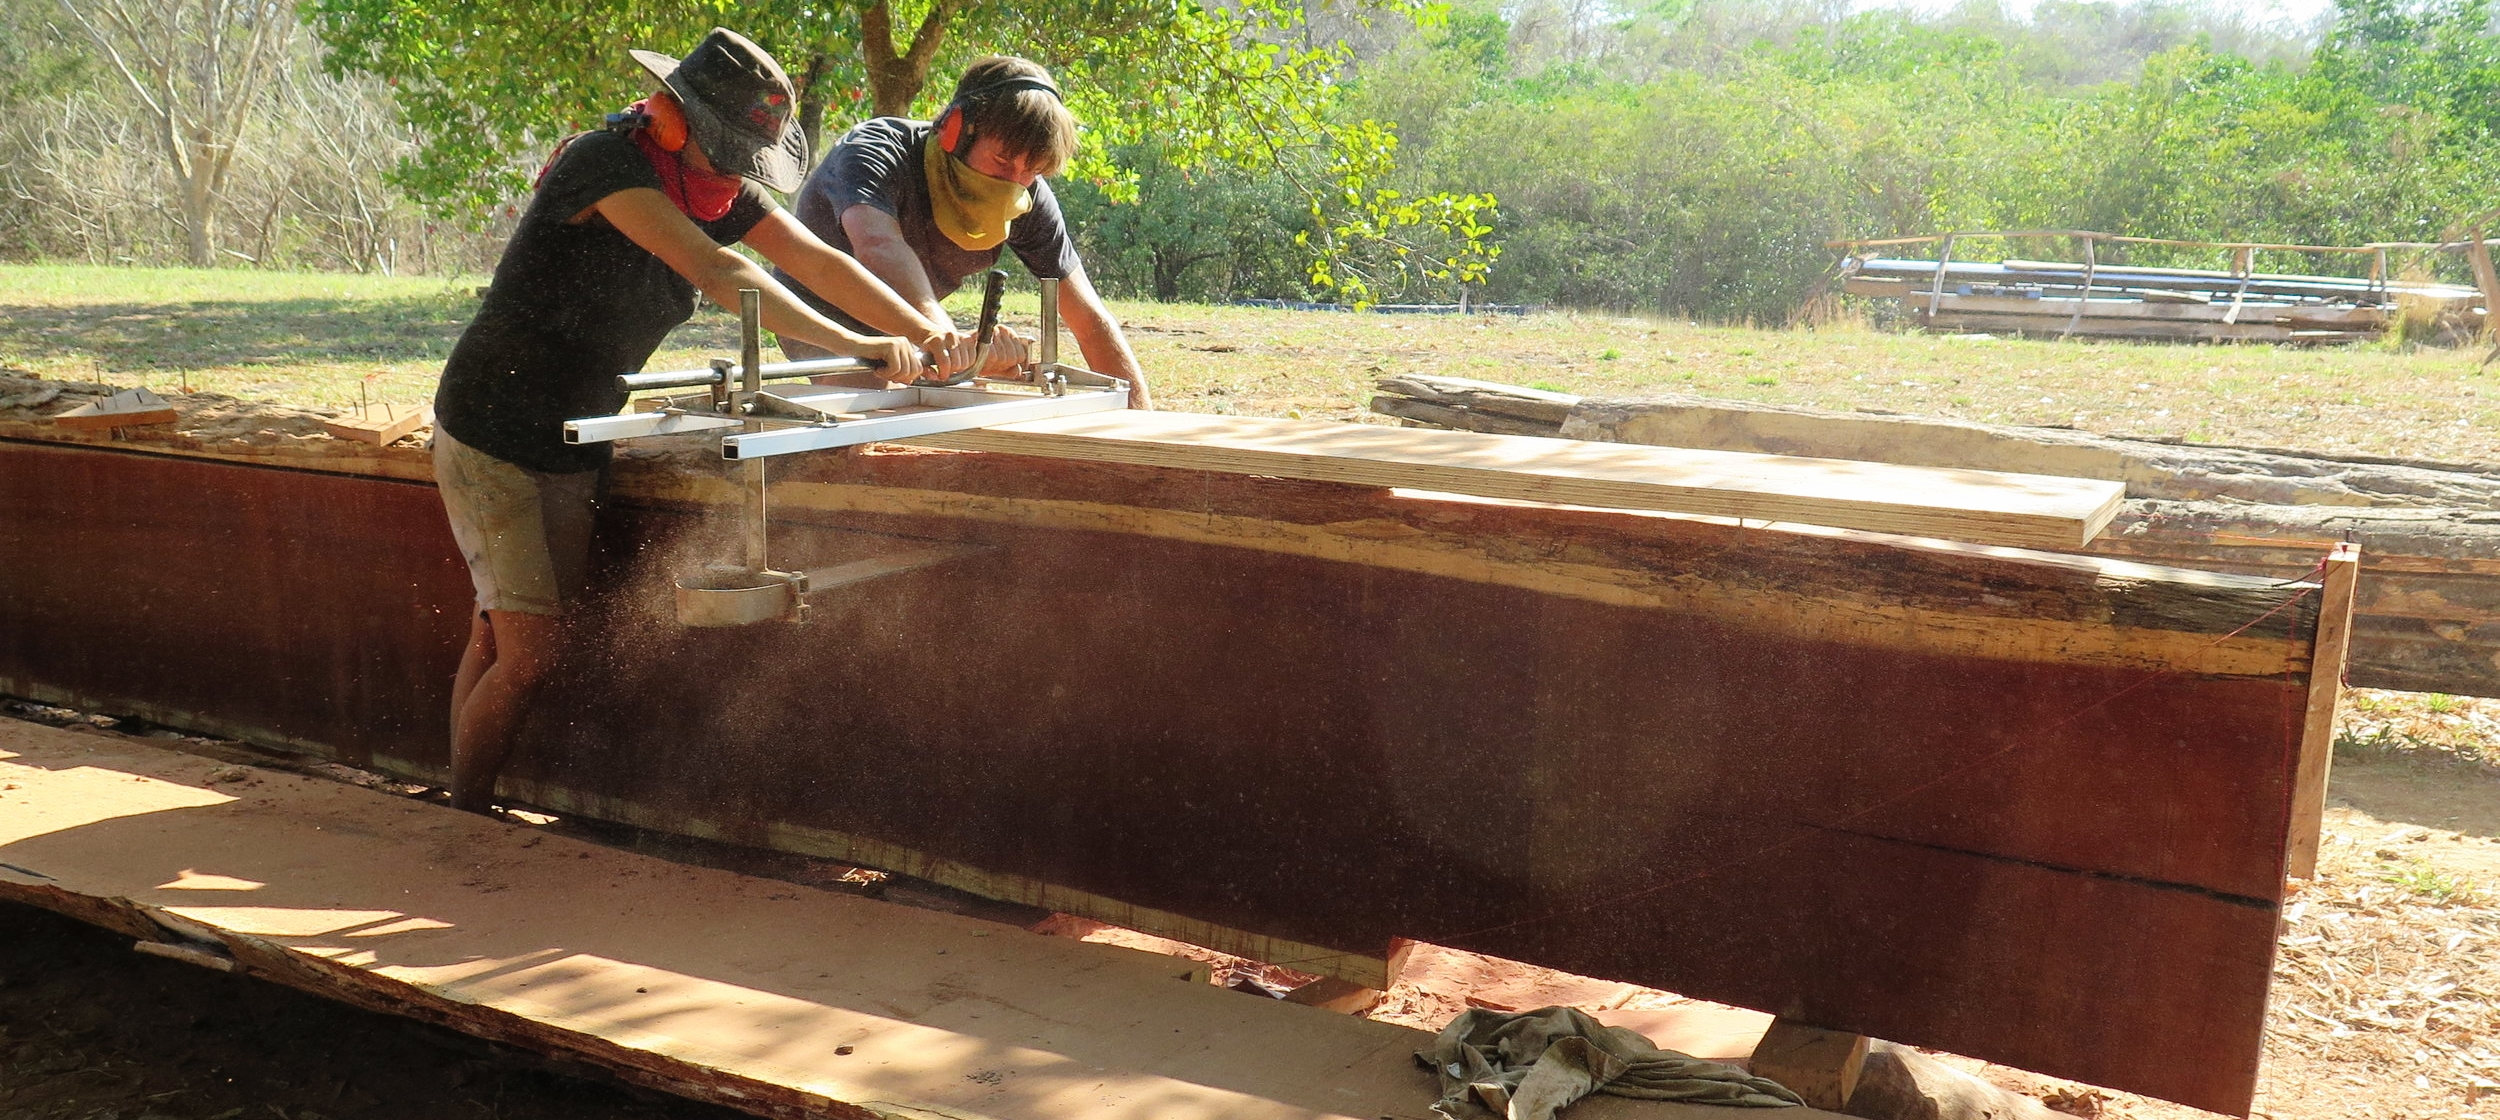 Lucie & Melle sawing up Tamarindo del Monte at the shipyard in Cocoroca, Punta Morales.